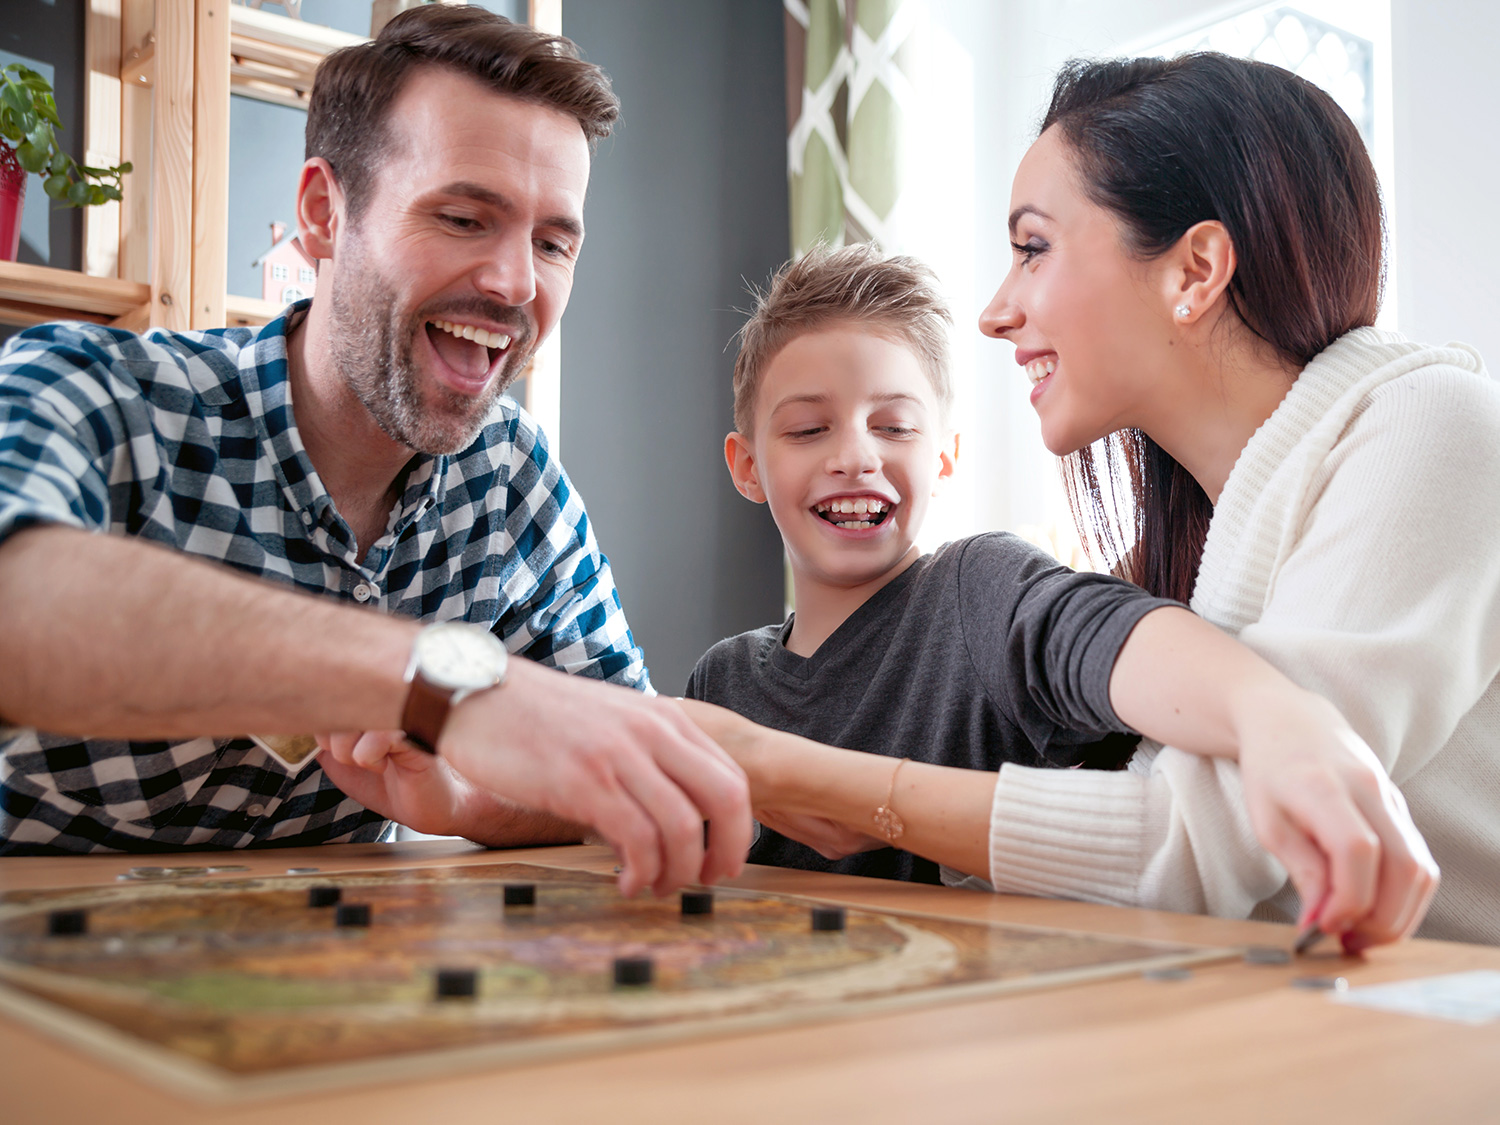 Benefits Of Board Games For Kids